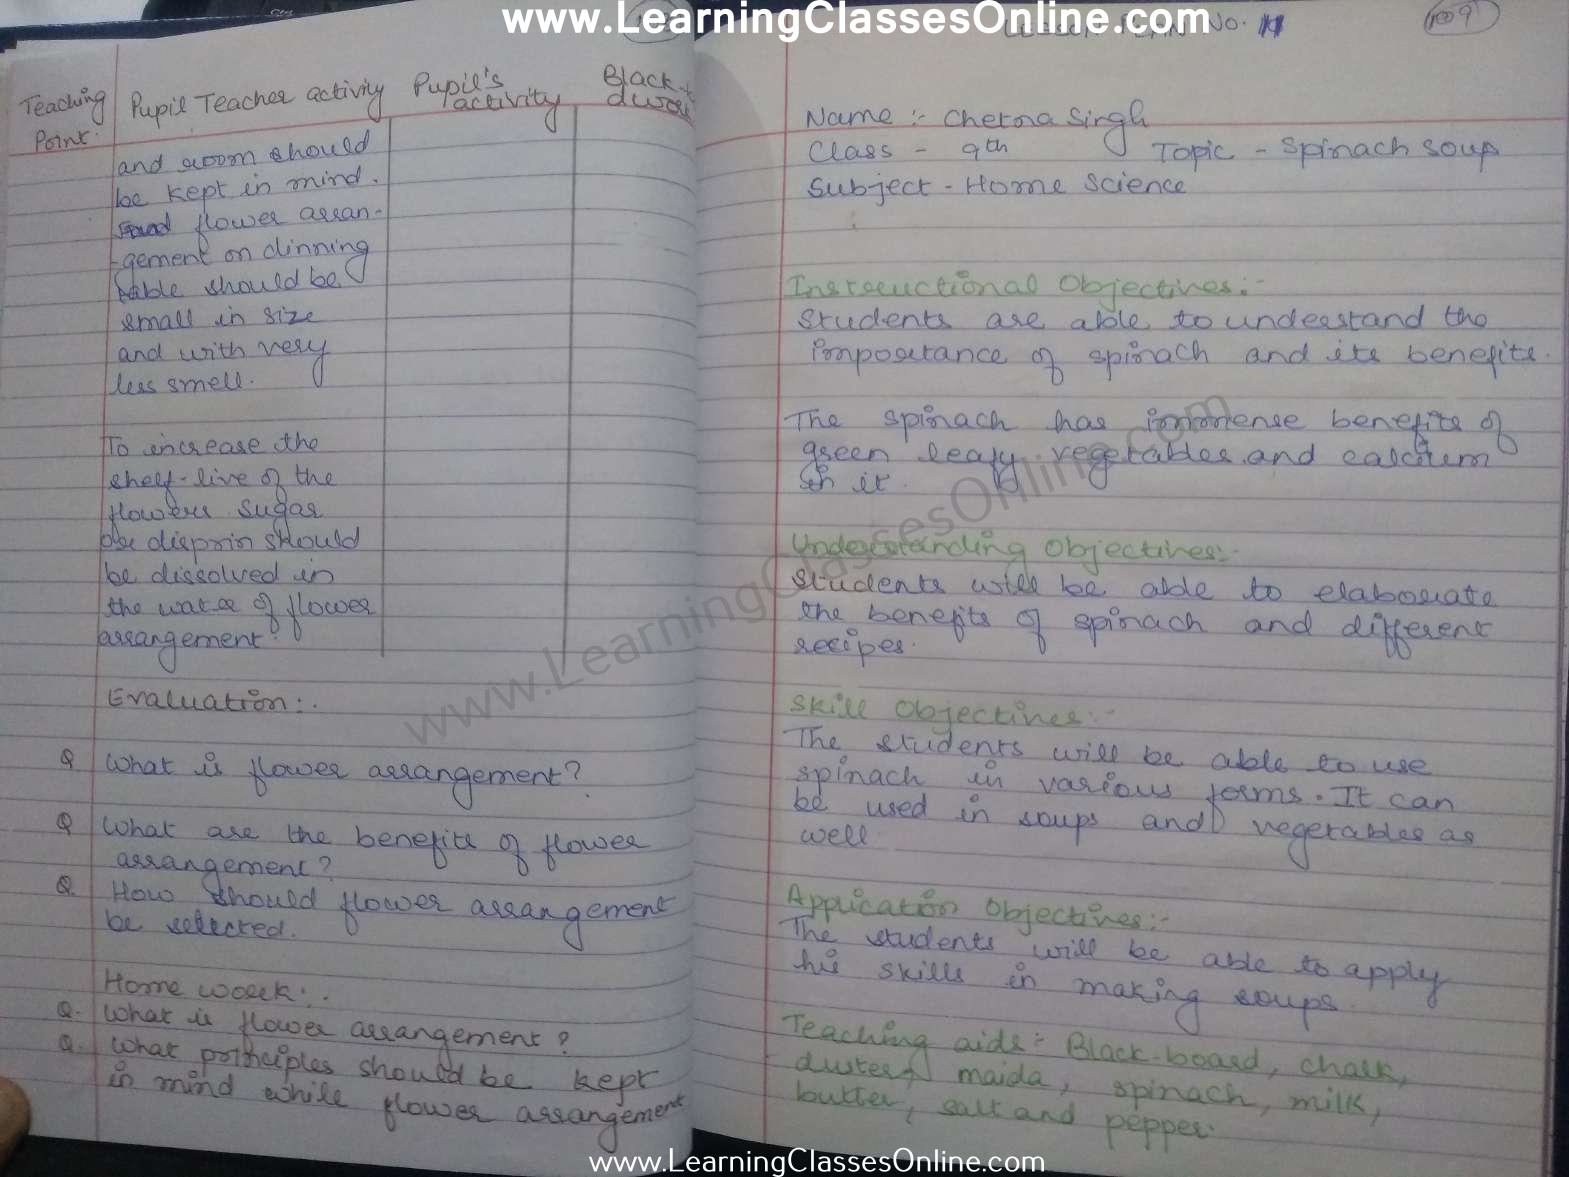 Spinach Soup Lesson Plan Home Science Class 9 in English free download pdf